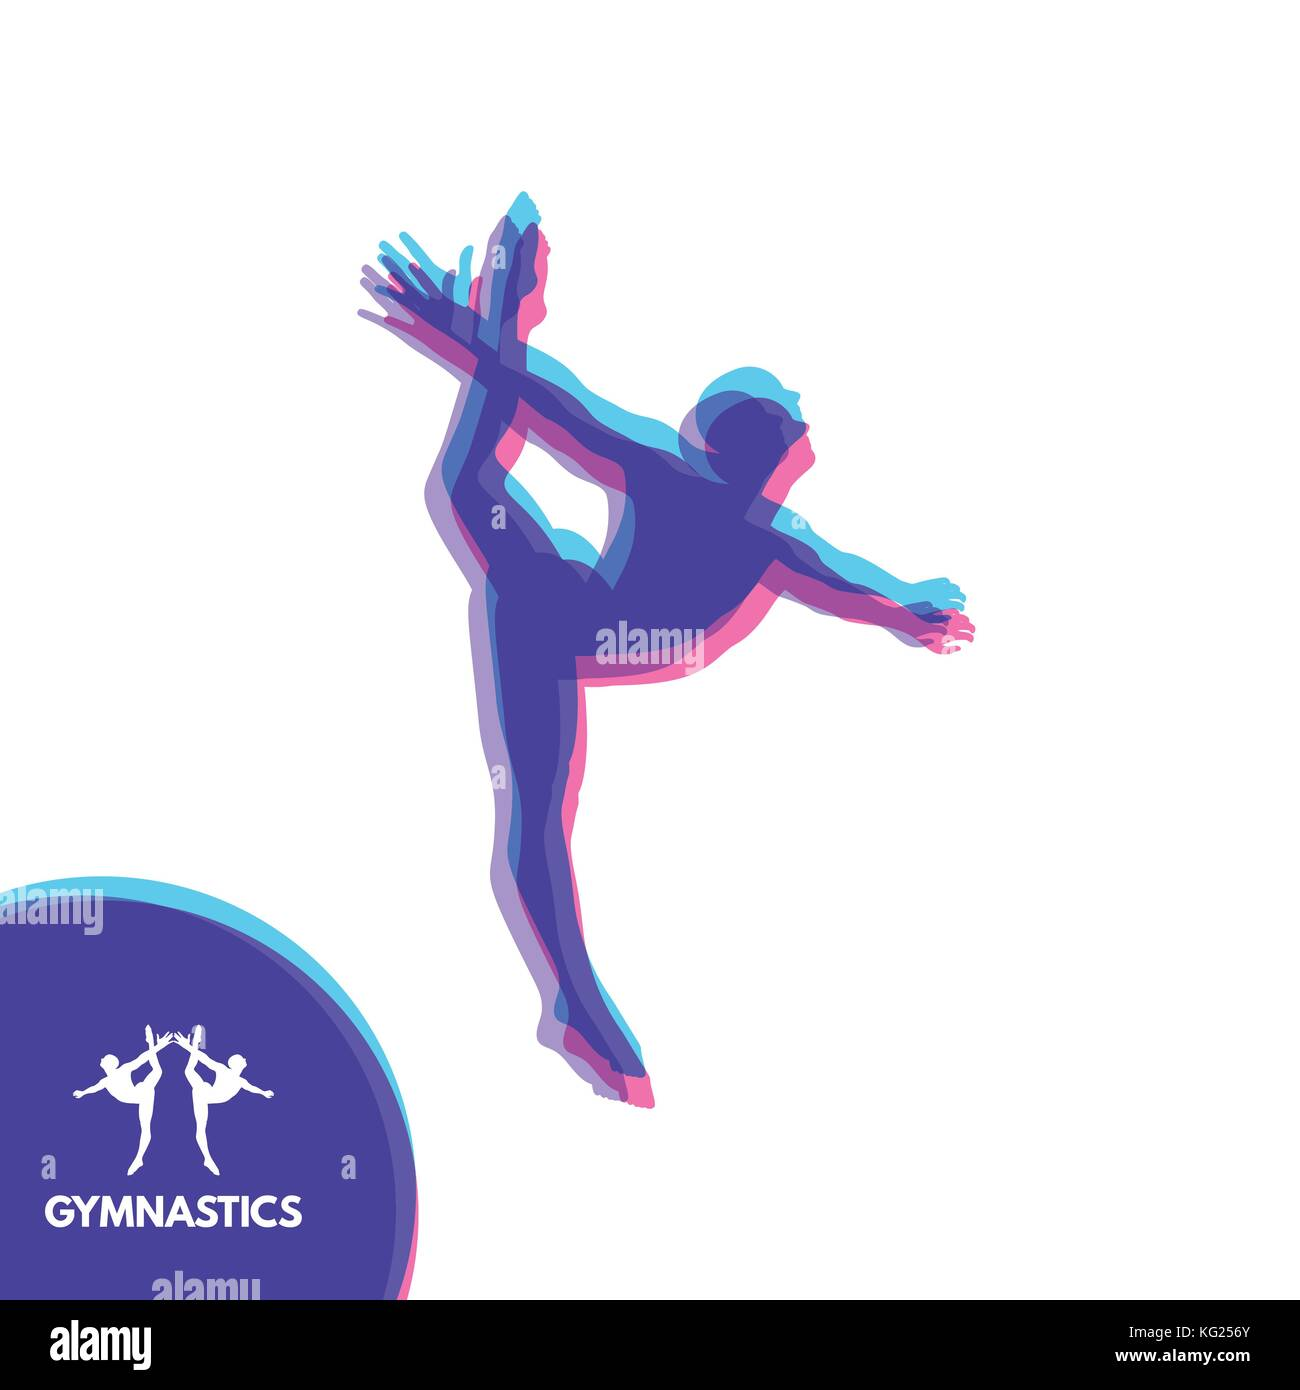 gymnast silhouette of a dancer gymnastics activities for icon